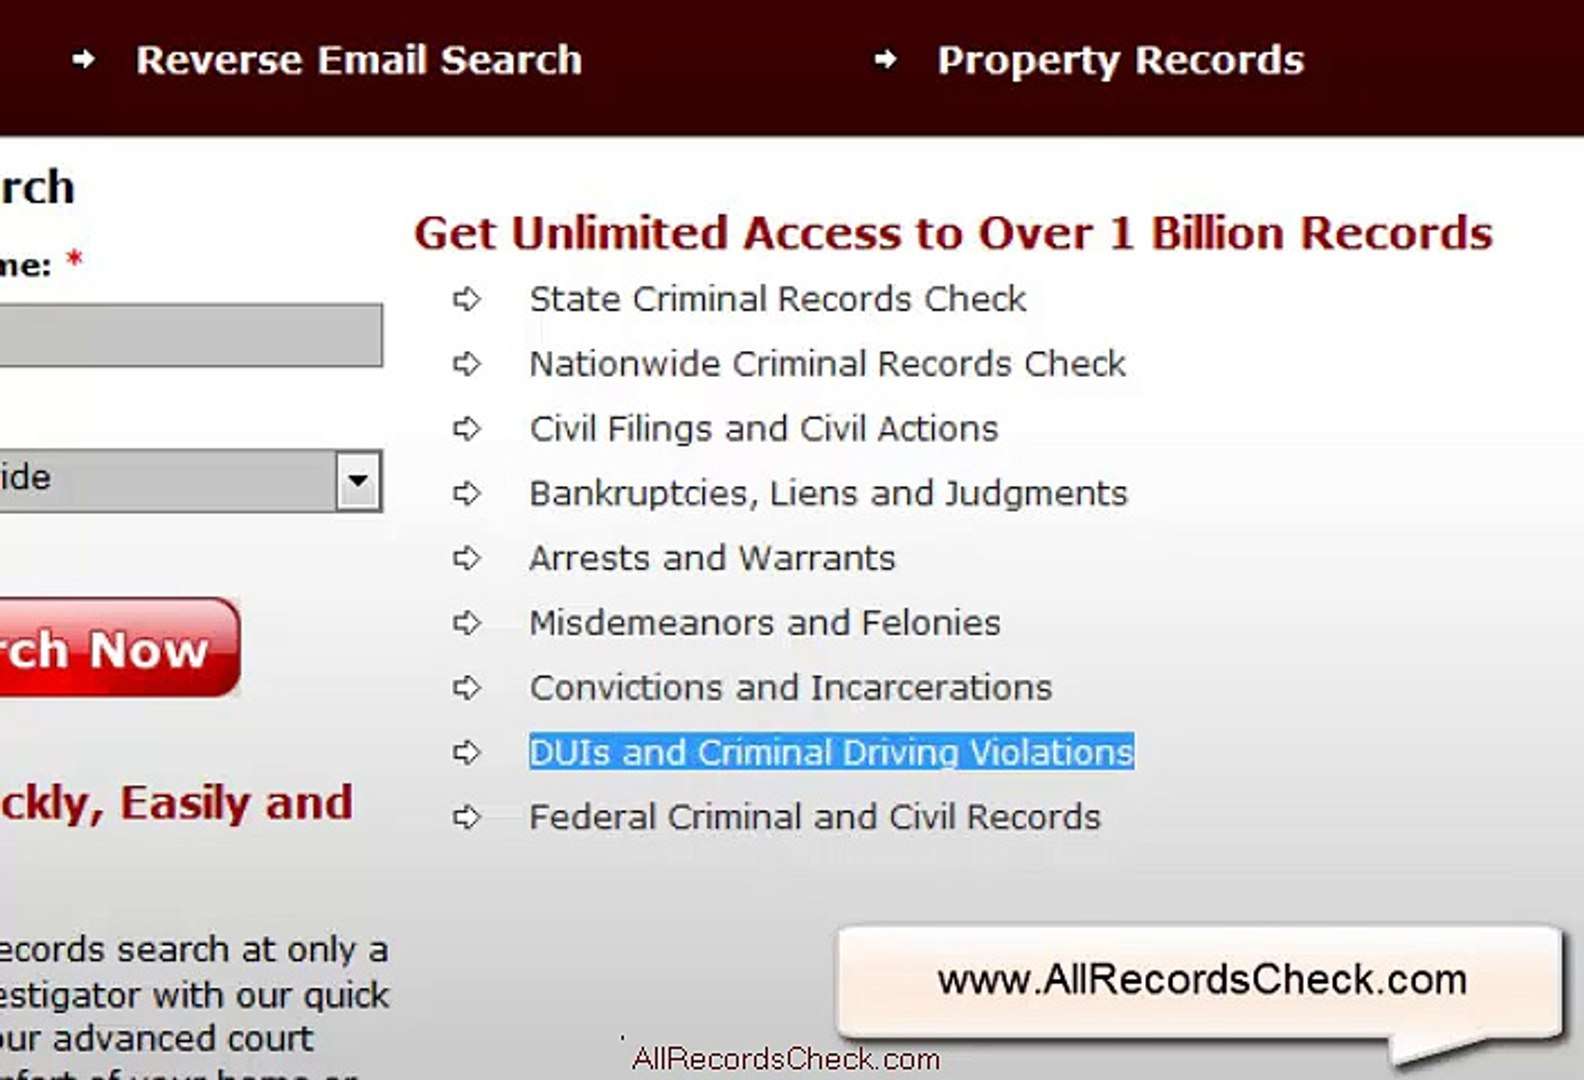 How to Check Allegheny County Court Records Online - Instantly Search Allegheney County Court Record